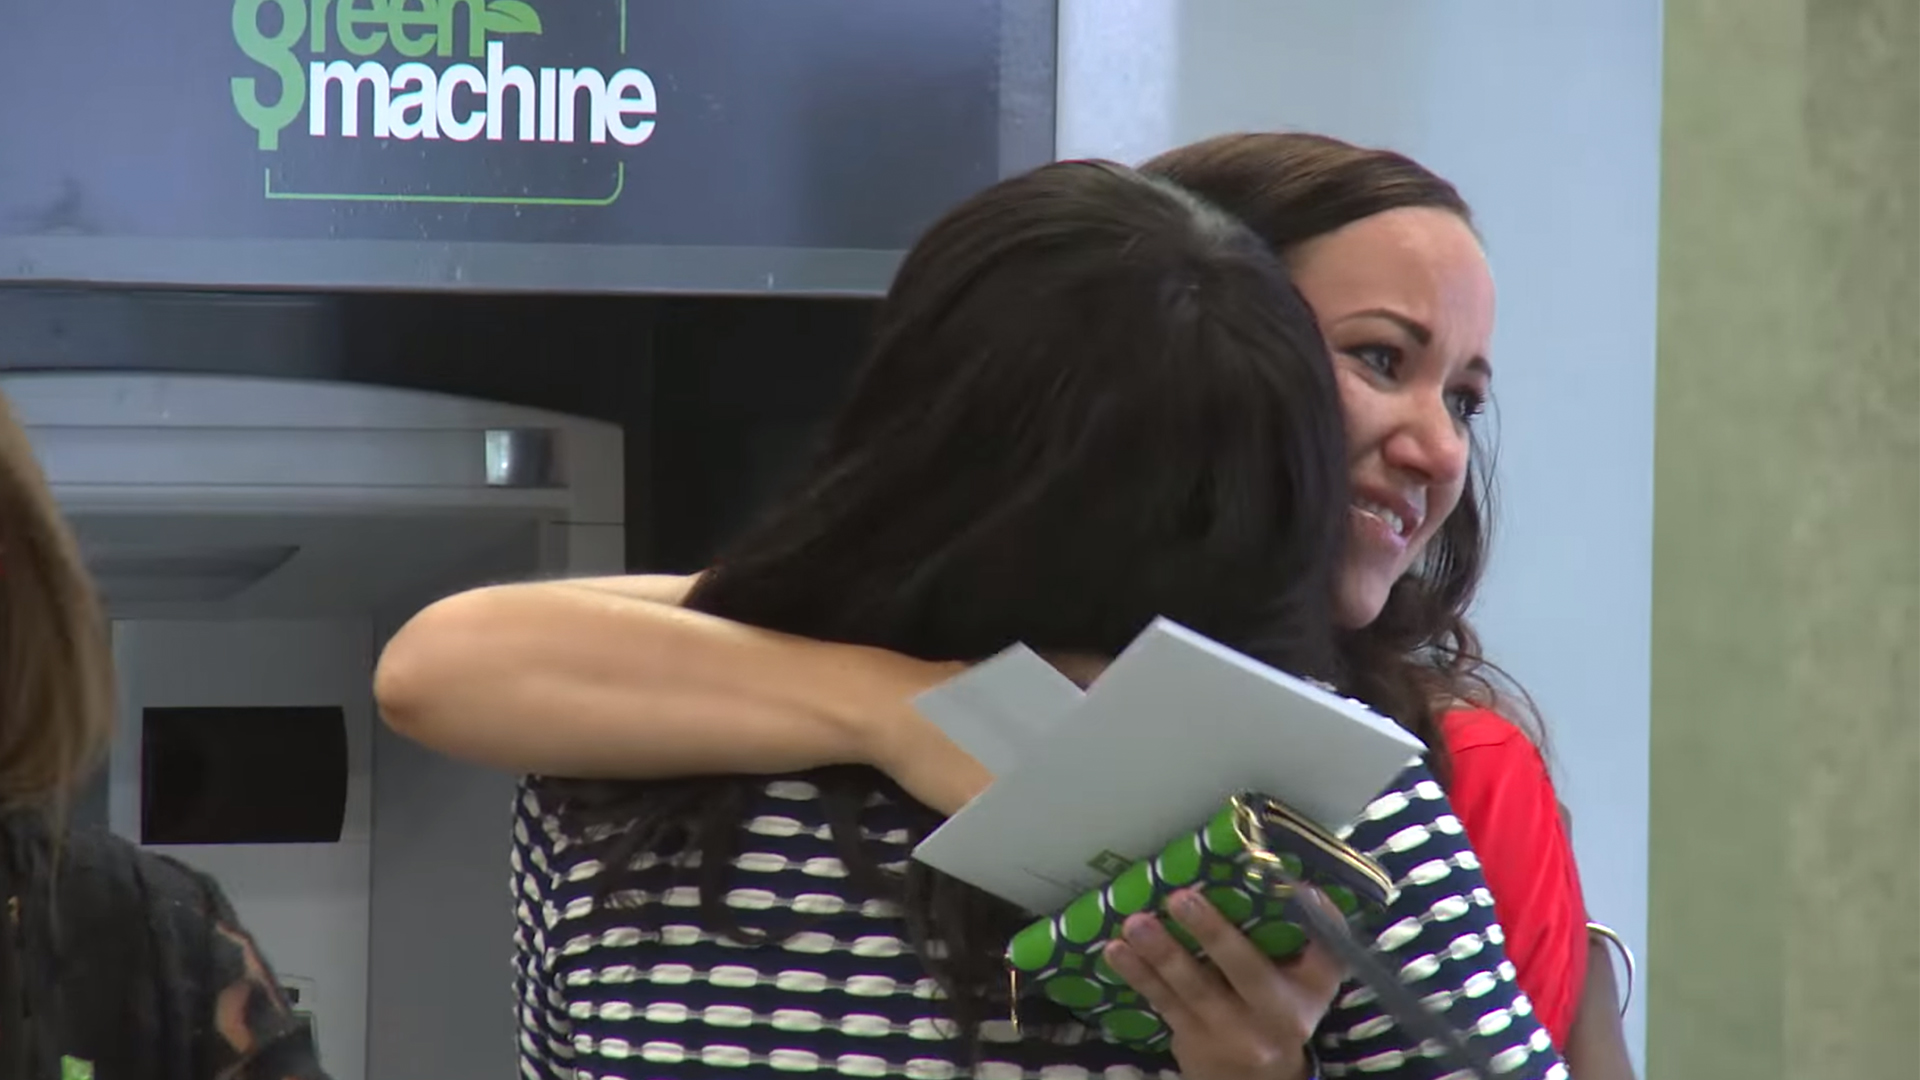 This Bank's Awesome Thank-You Video Will Have You in Tears